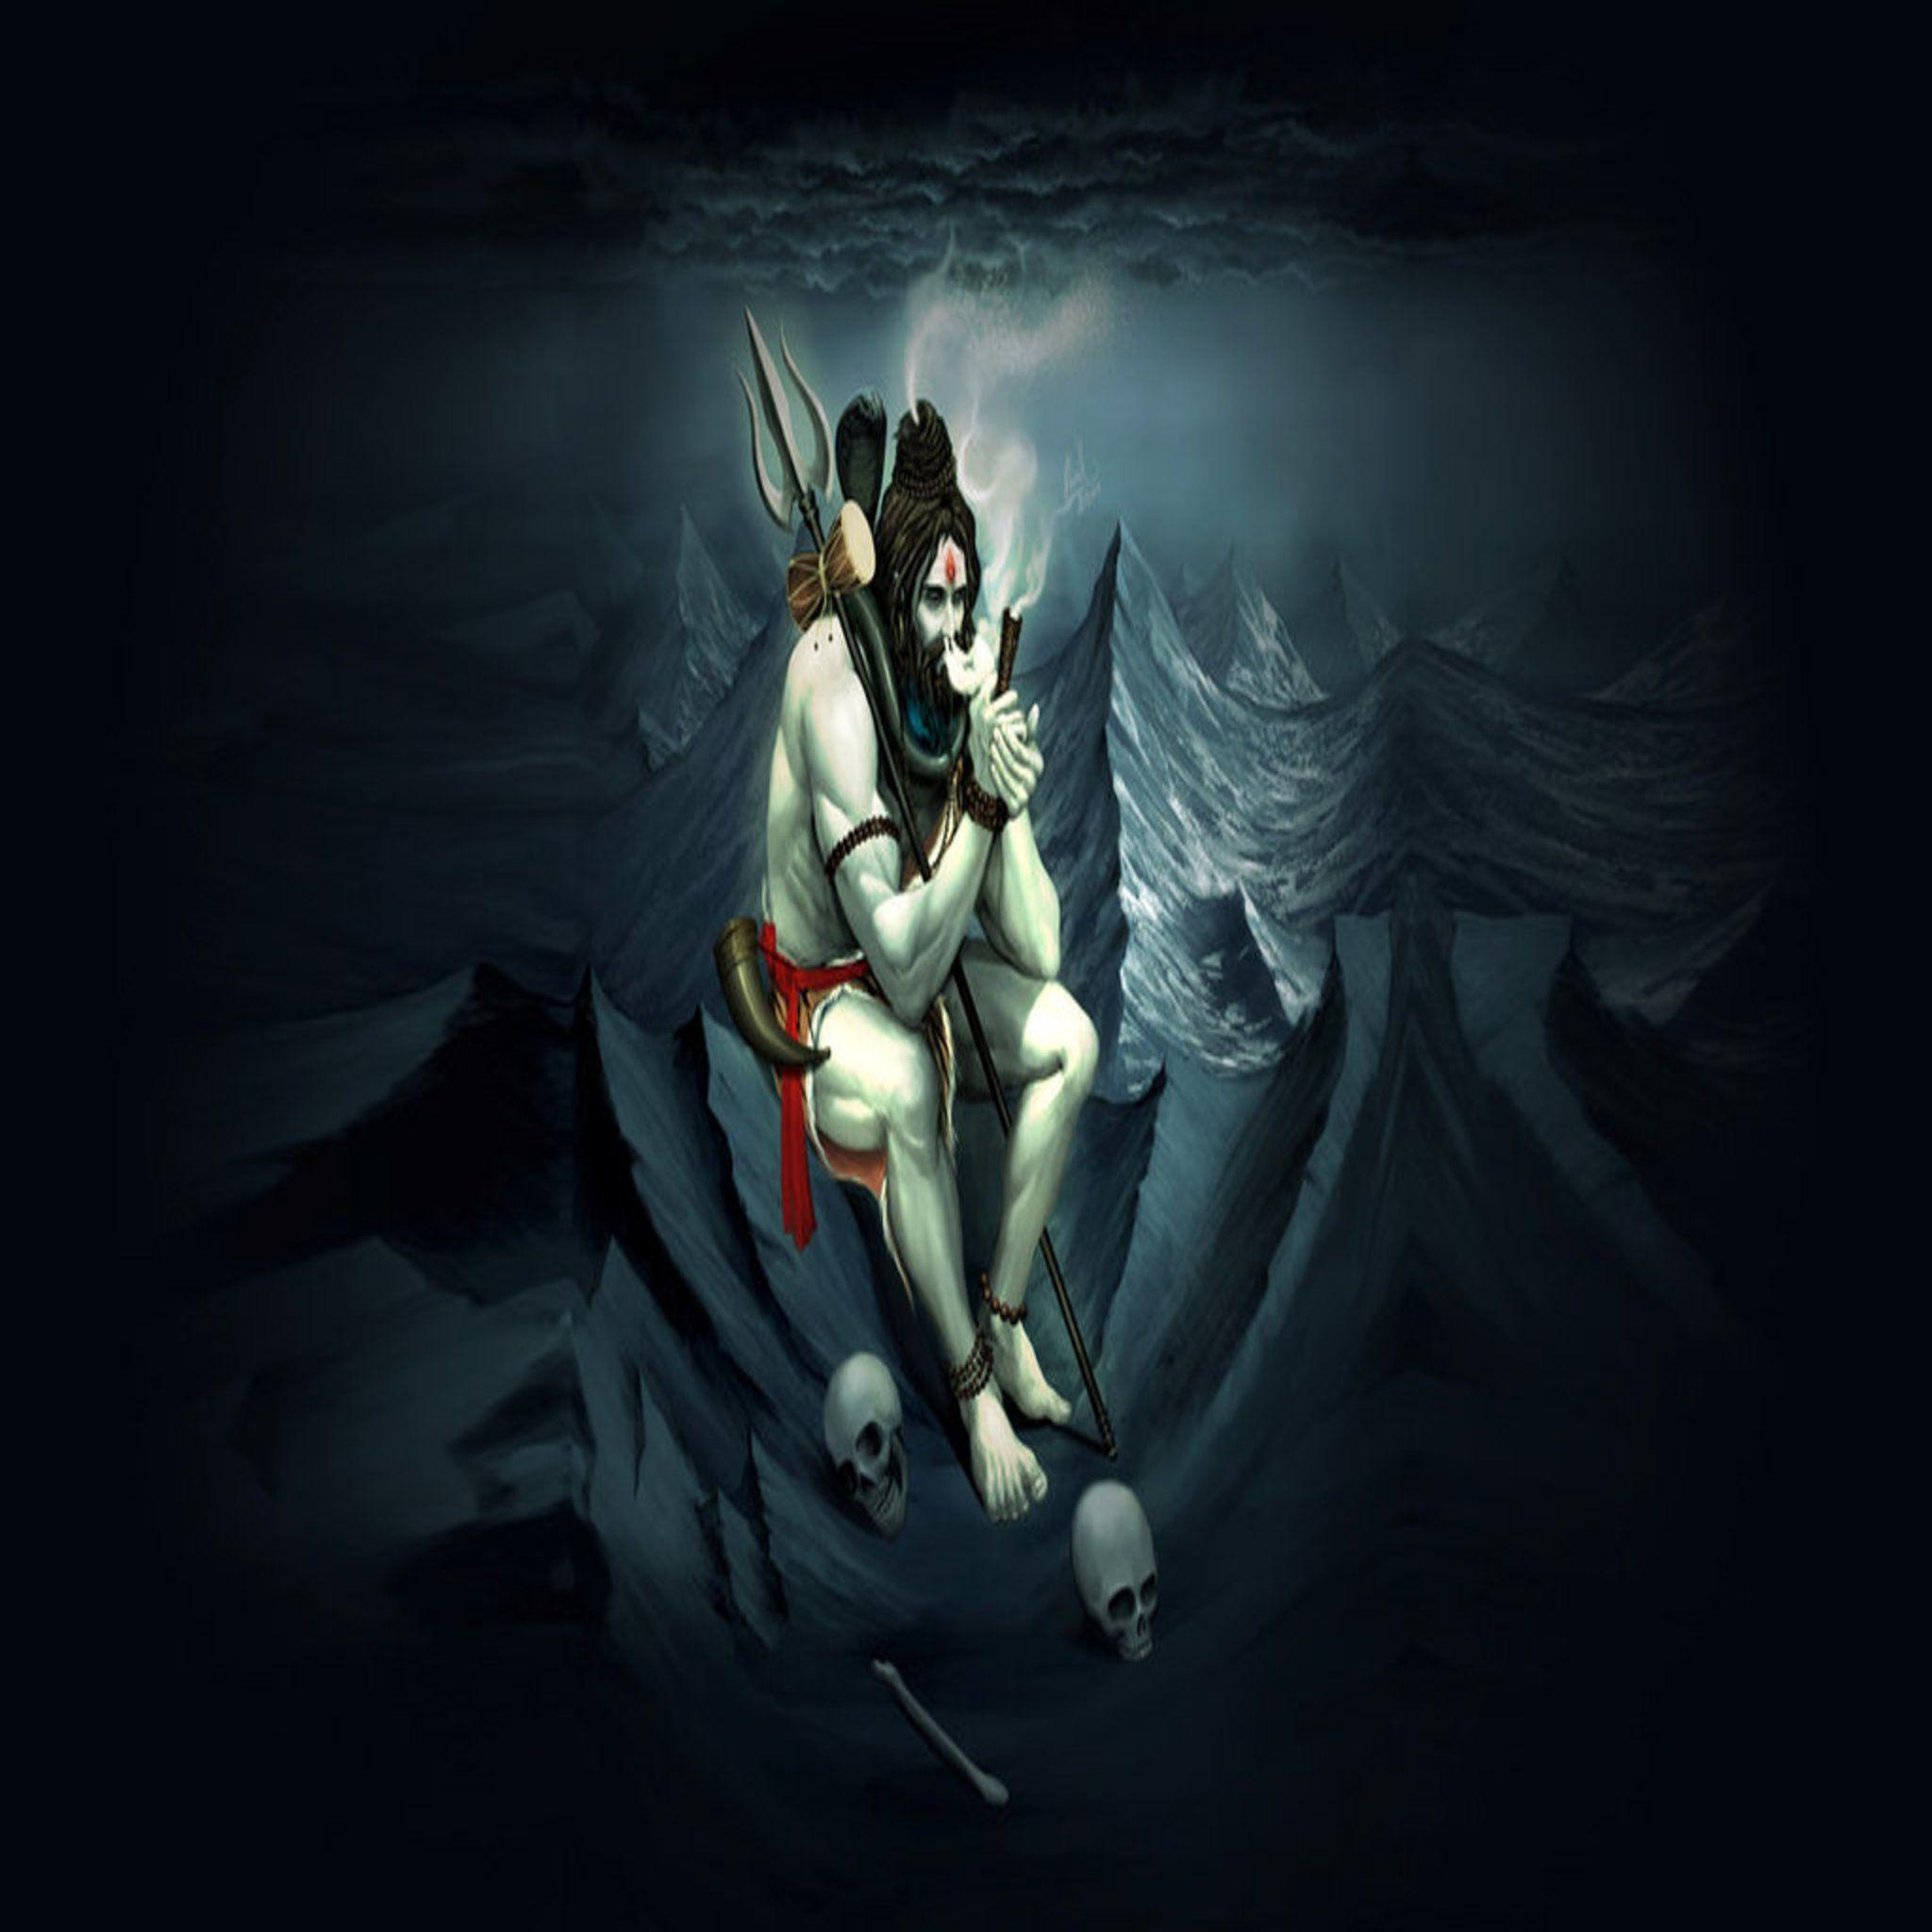 Lord Shiva 4k Wallpapers Wallpaper Cave